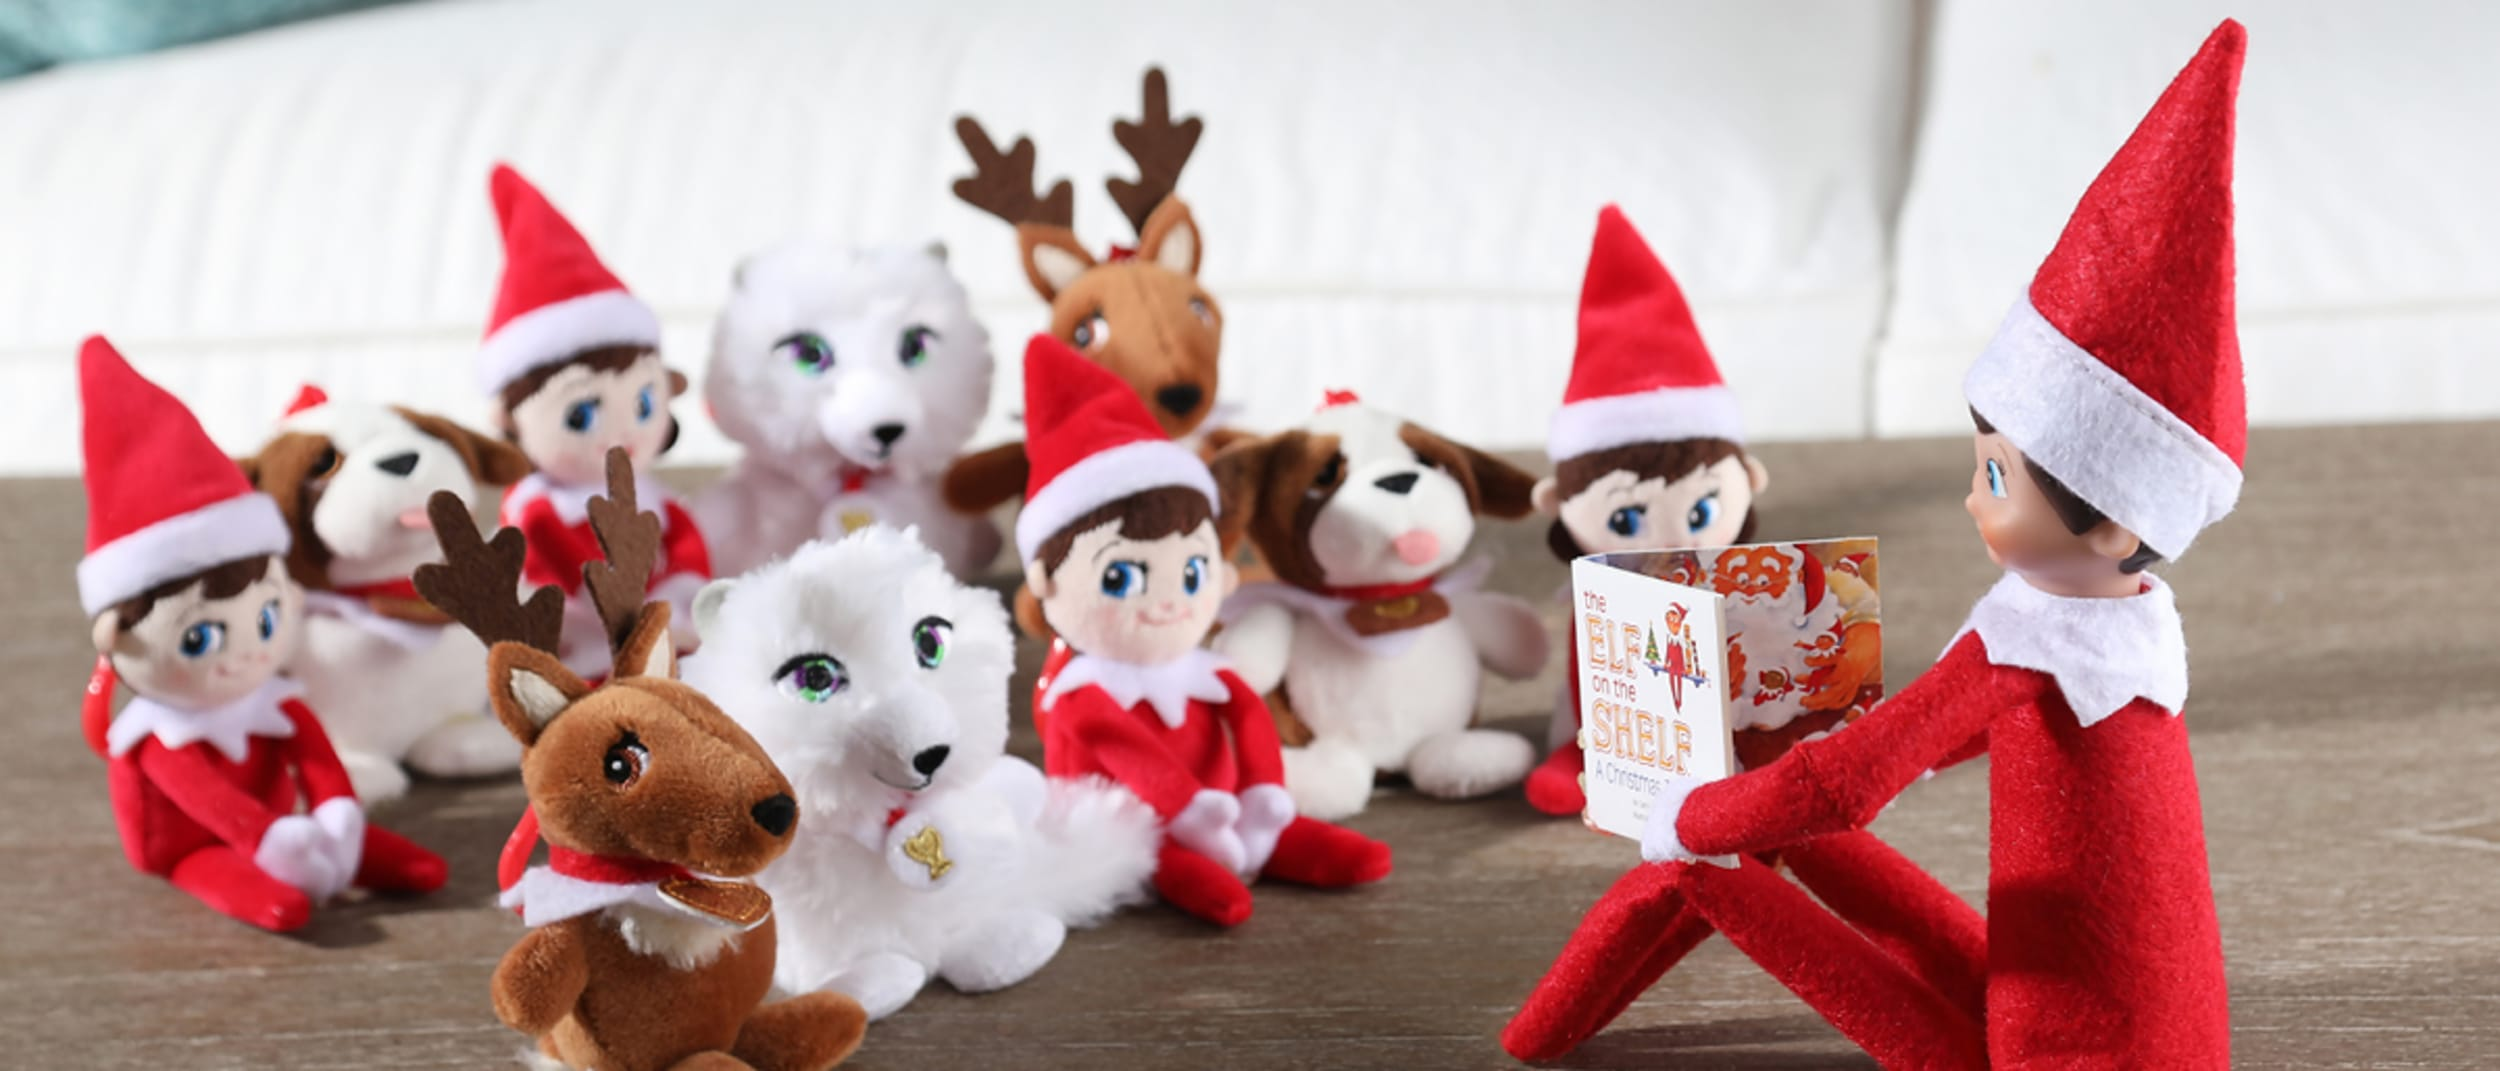 Storytime with The Elf on the Shelf®